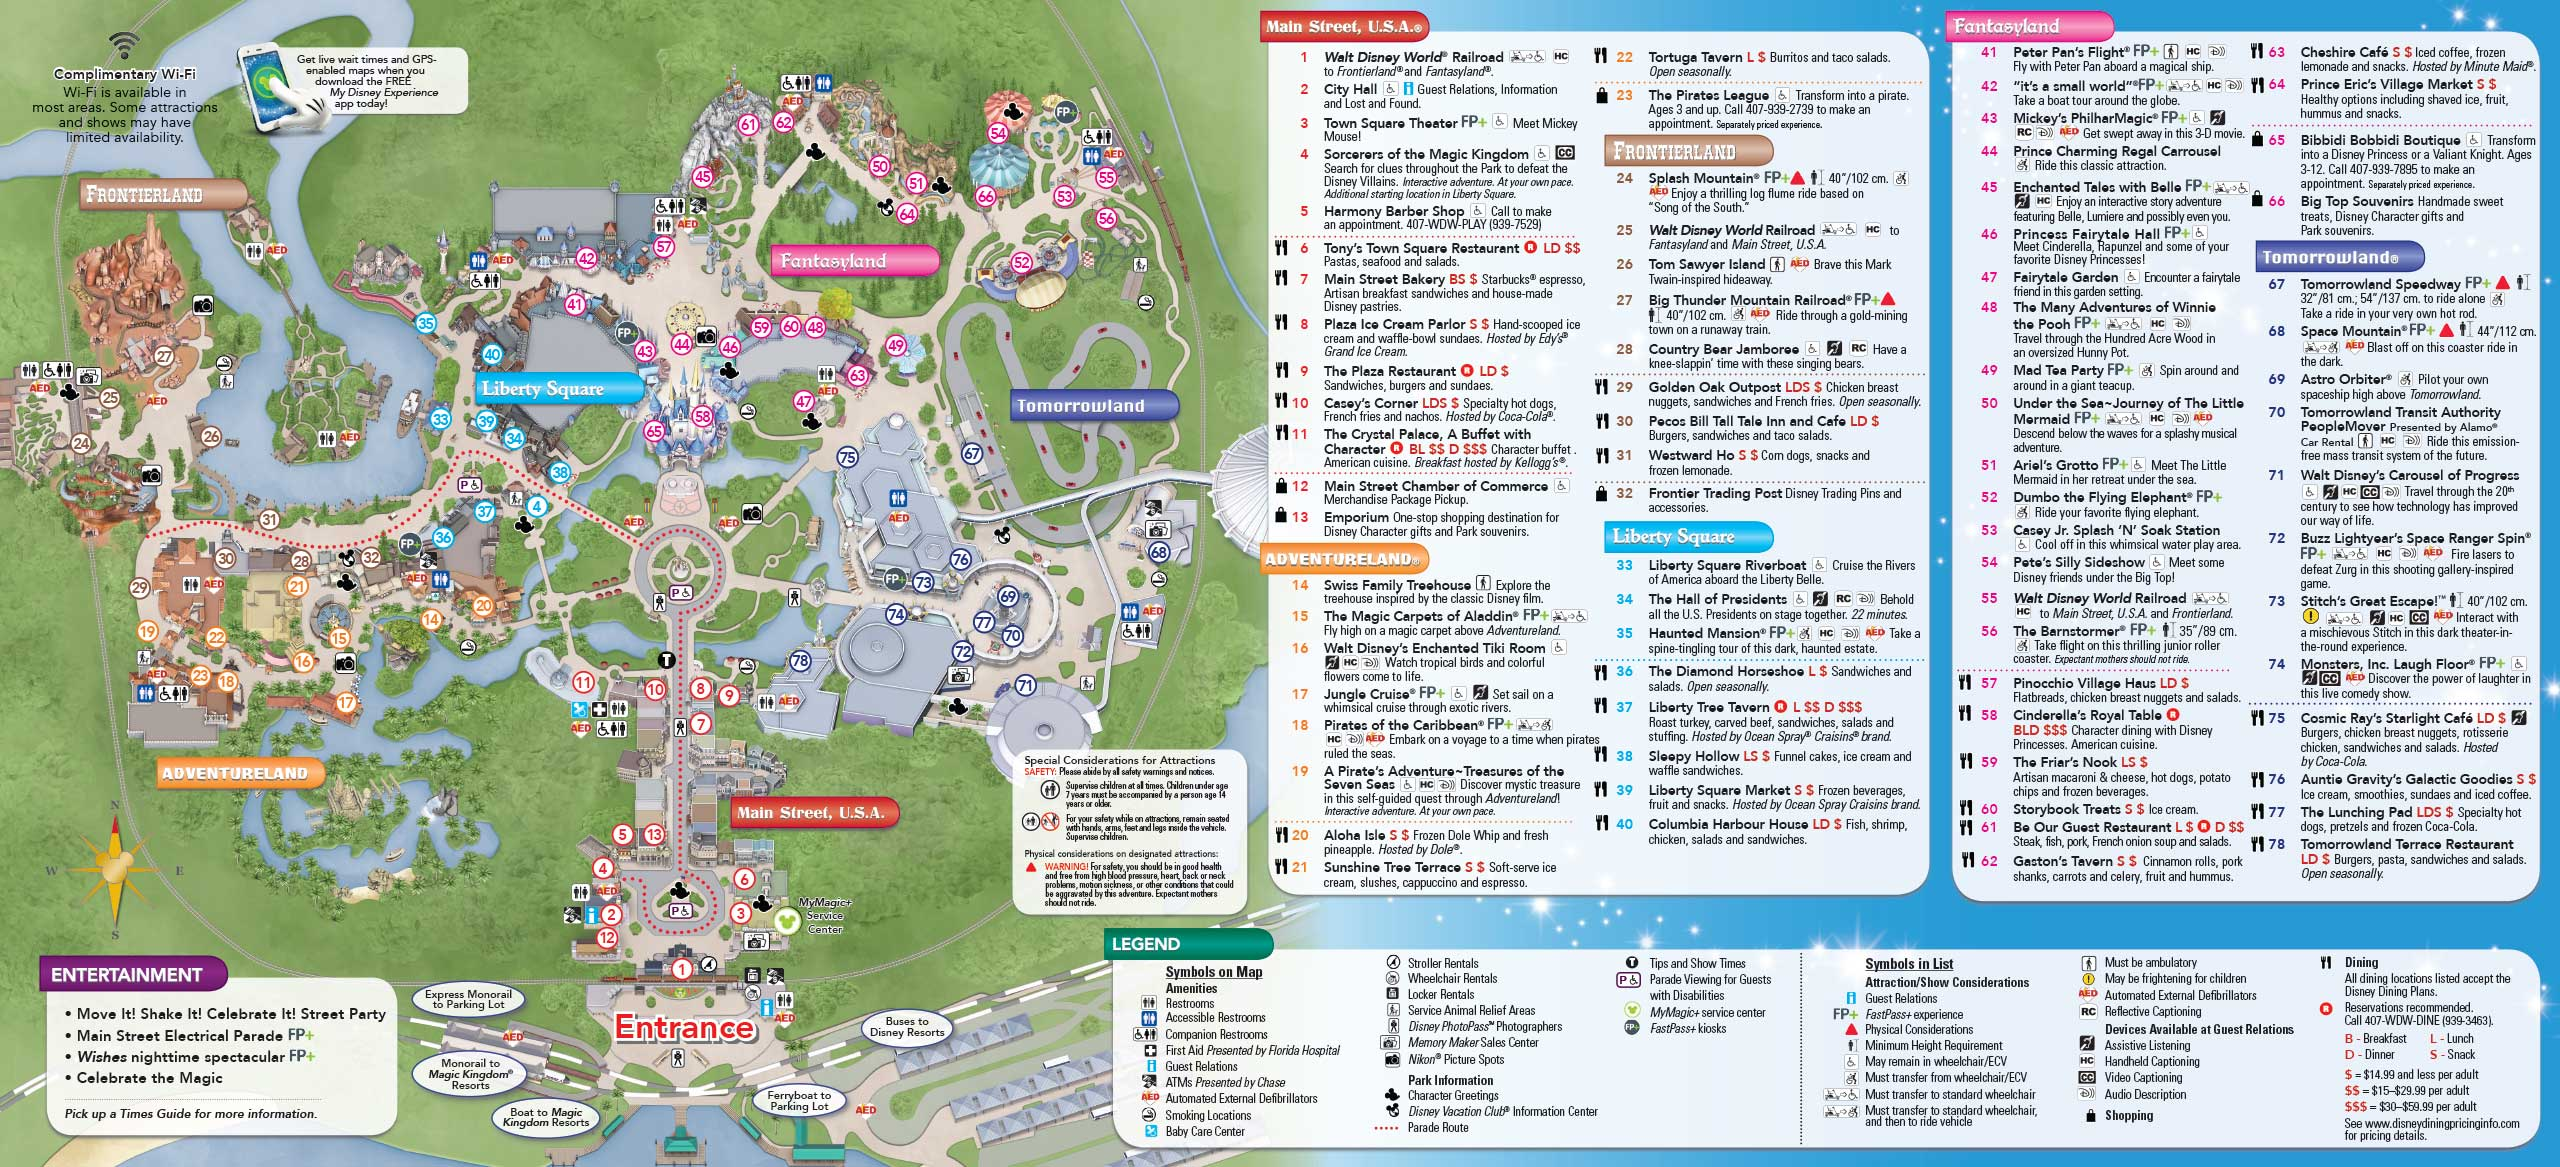 graphic regarding Printable Disney Maps called Printable Disney Globe Maps